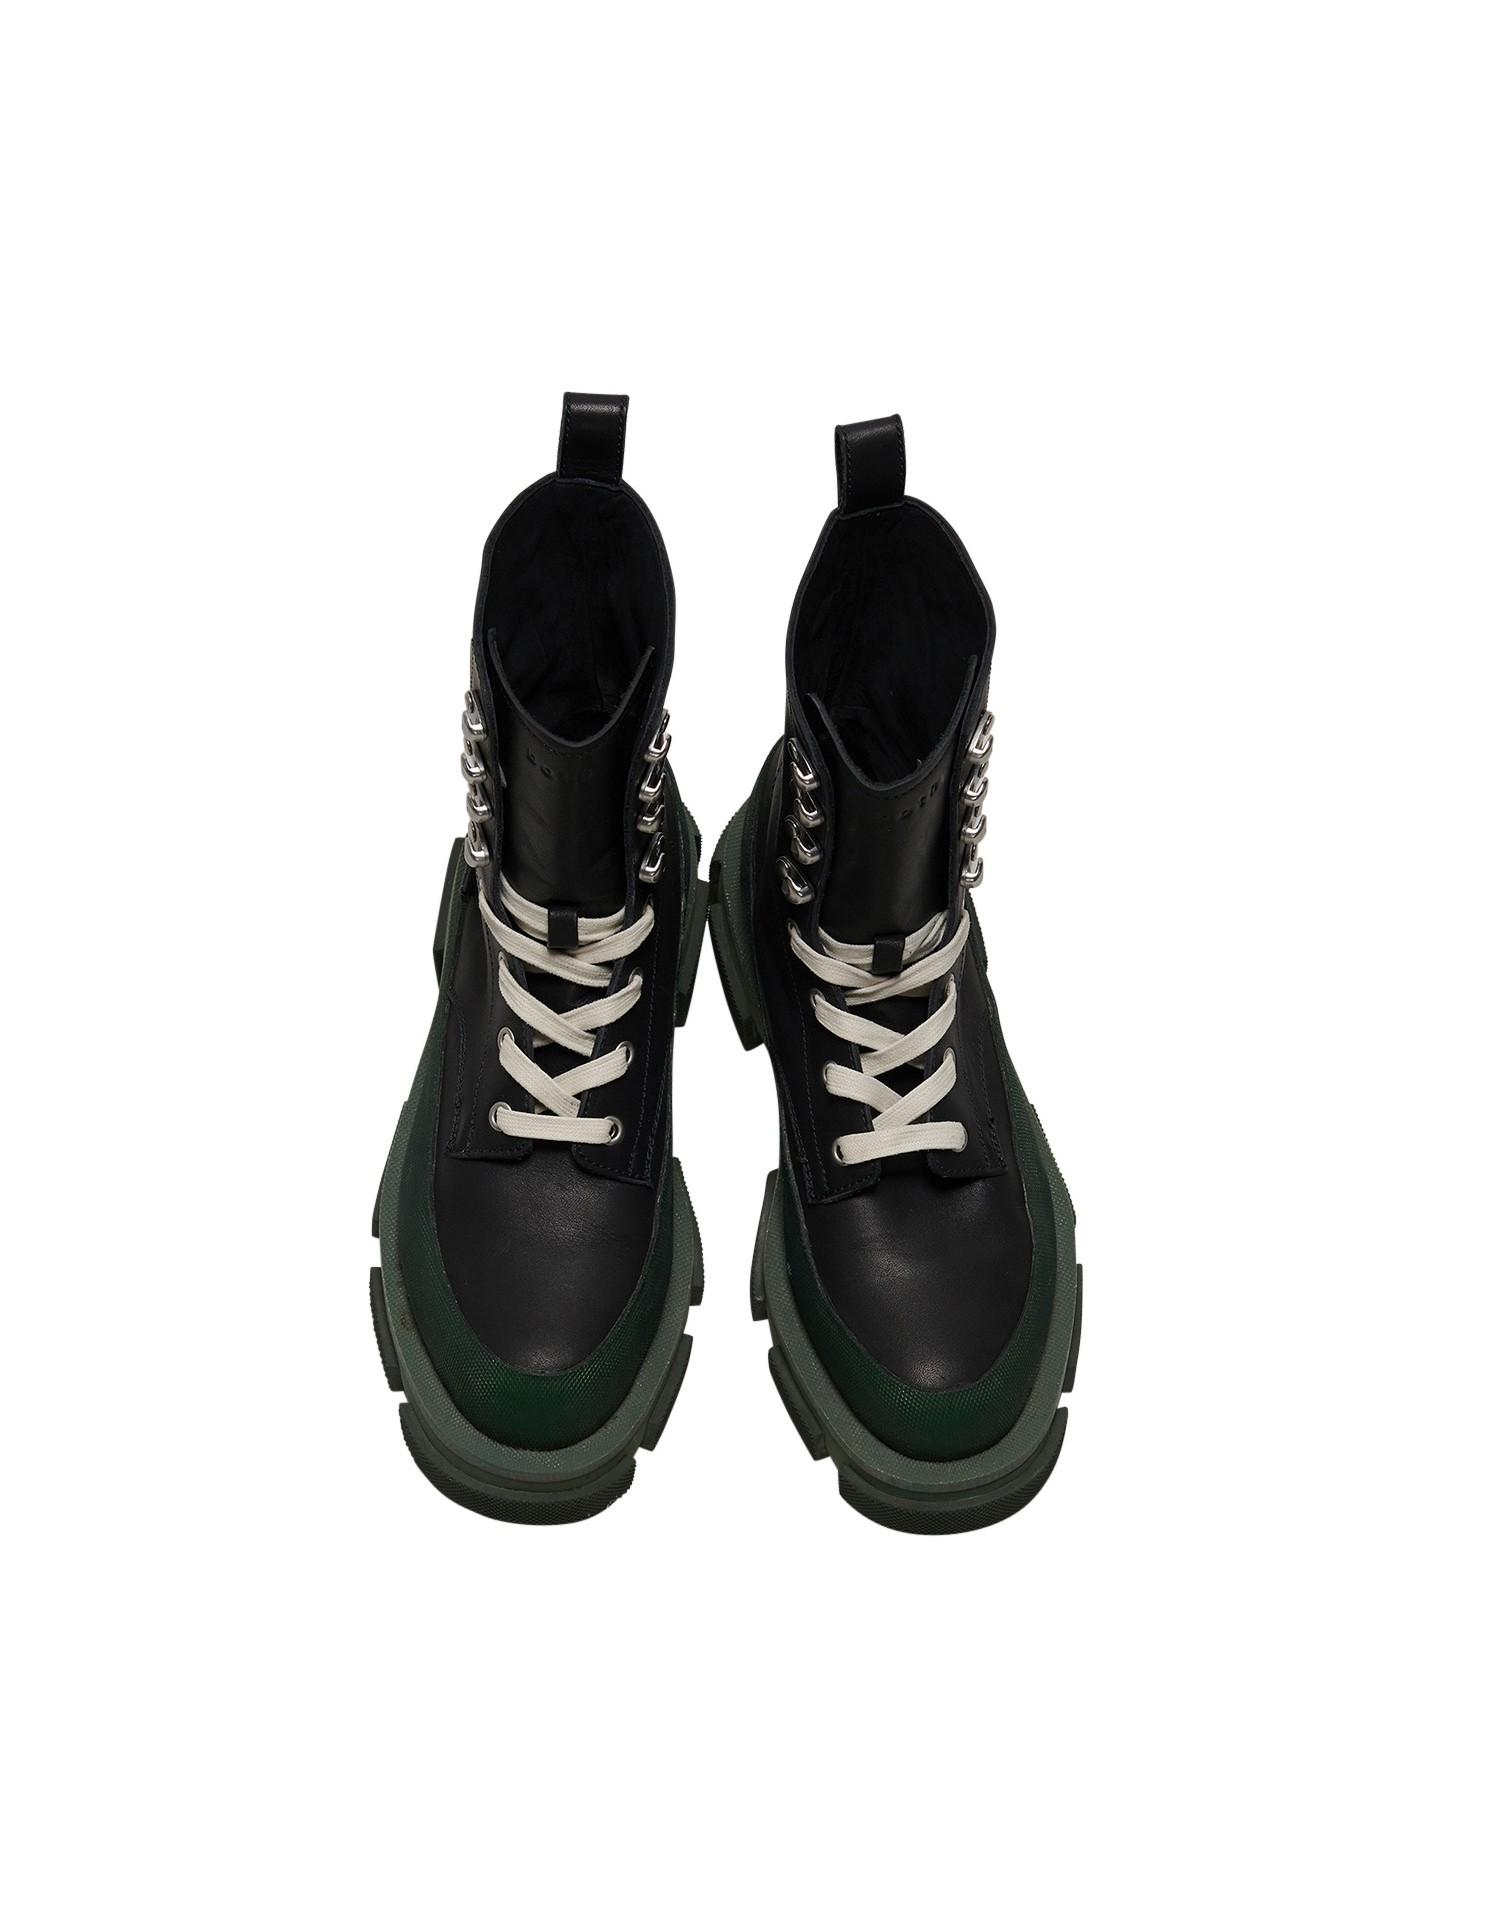 Both x MONSE Gao High Boots in Black and Olive Aerial View